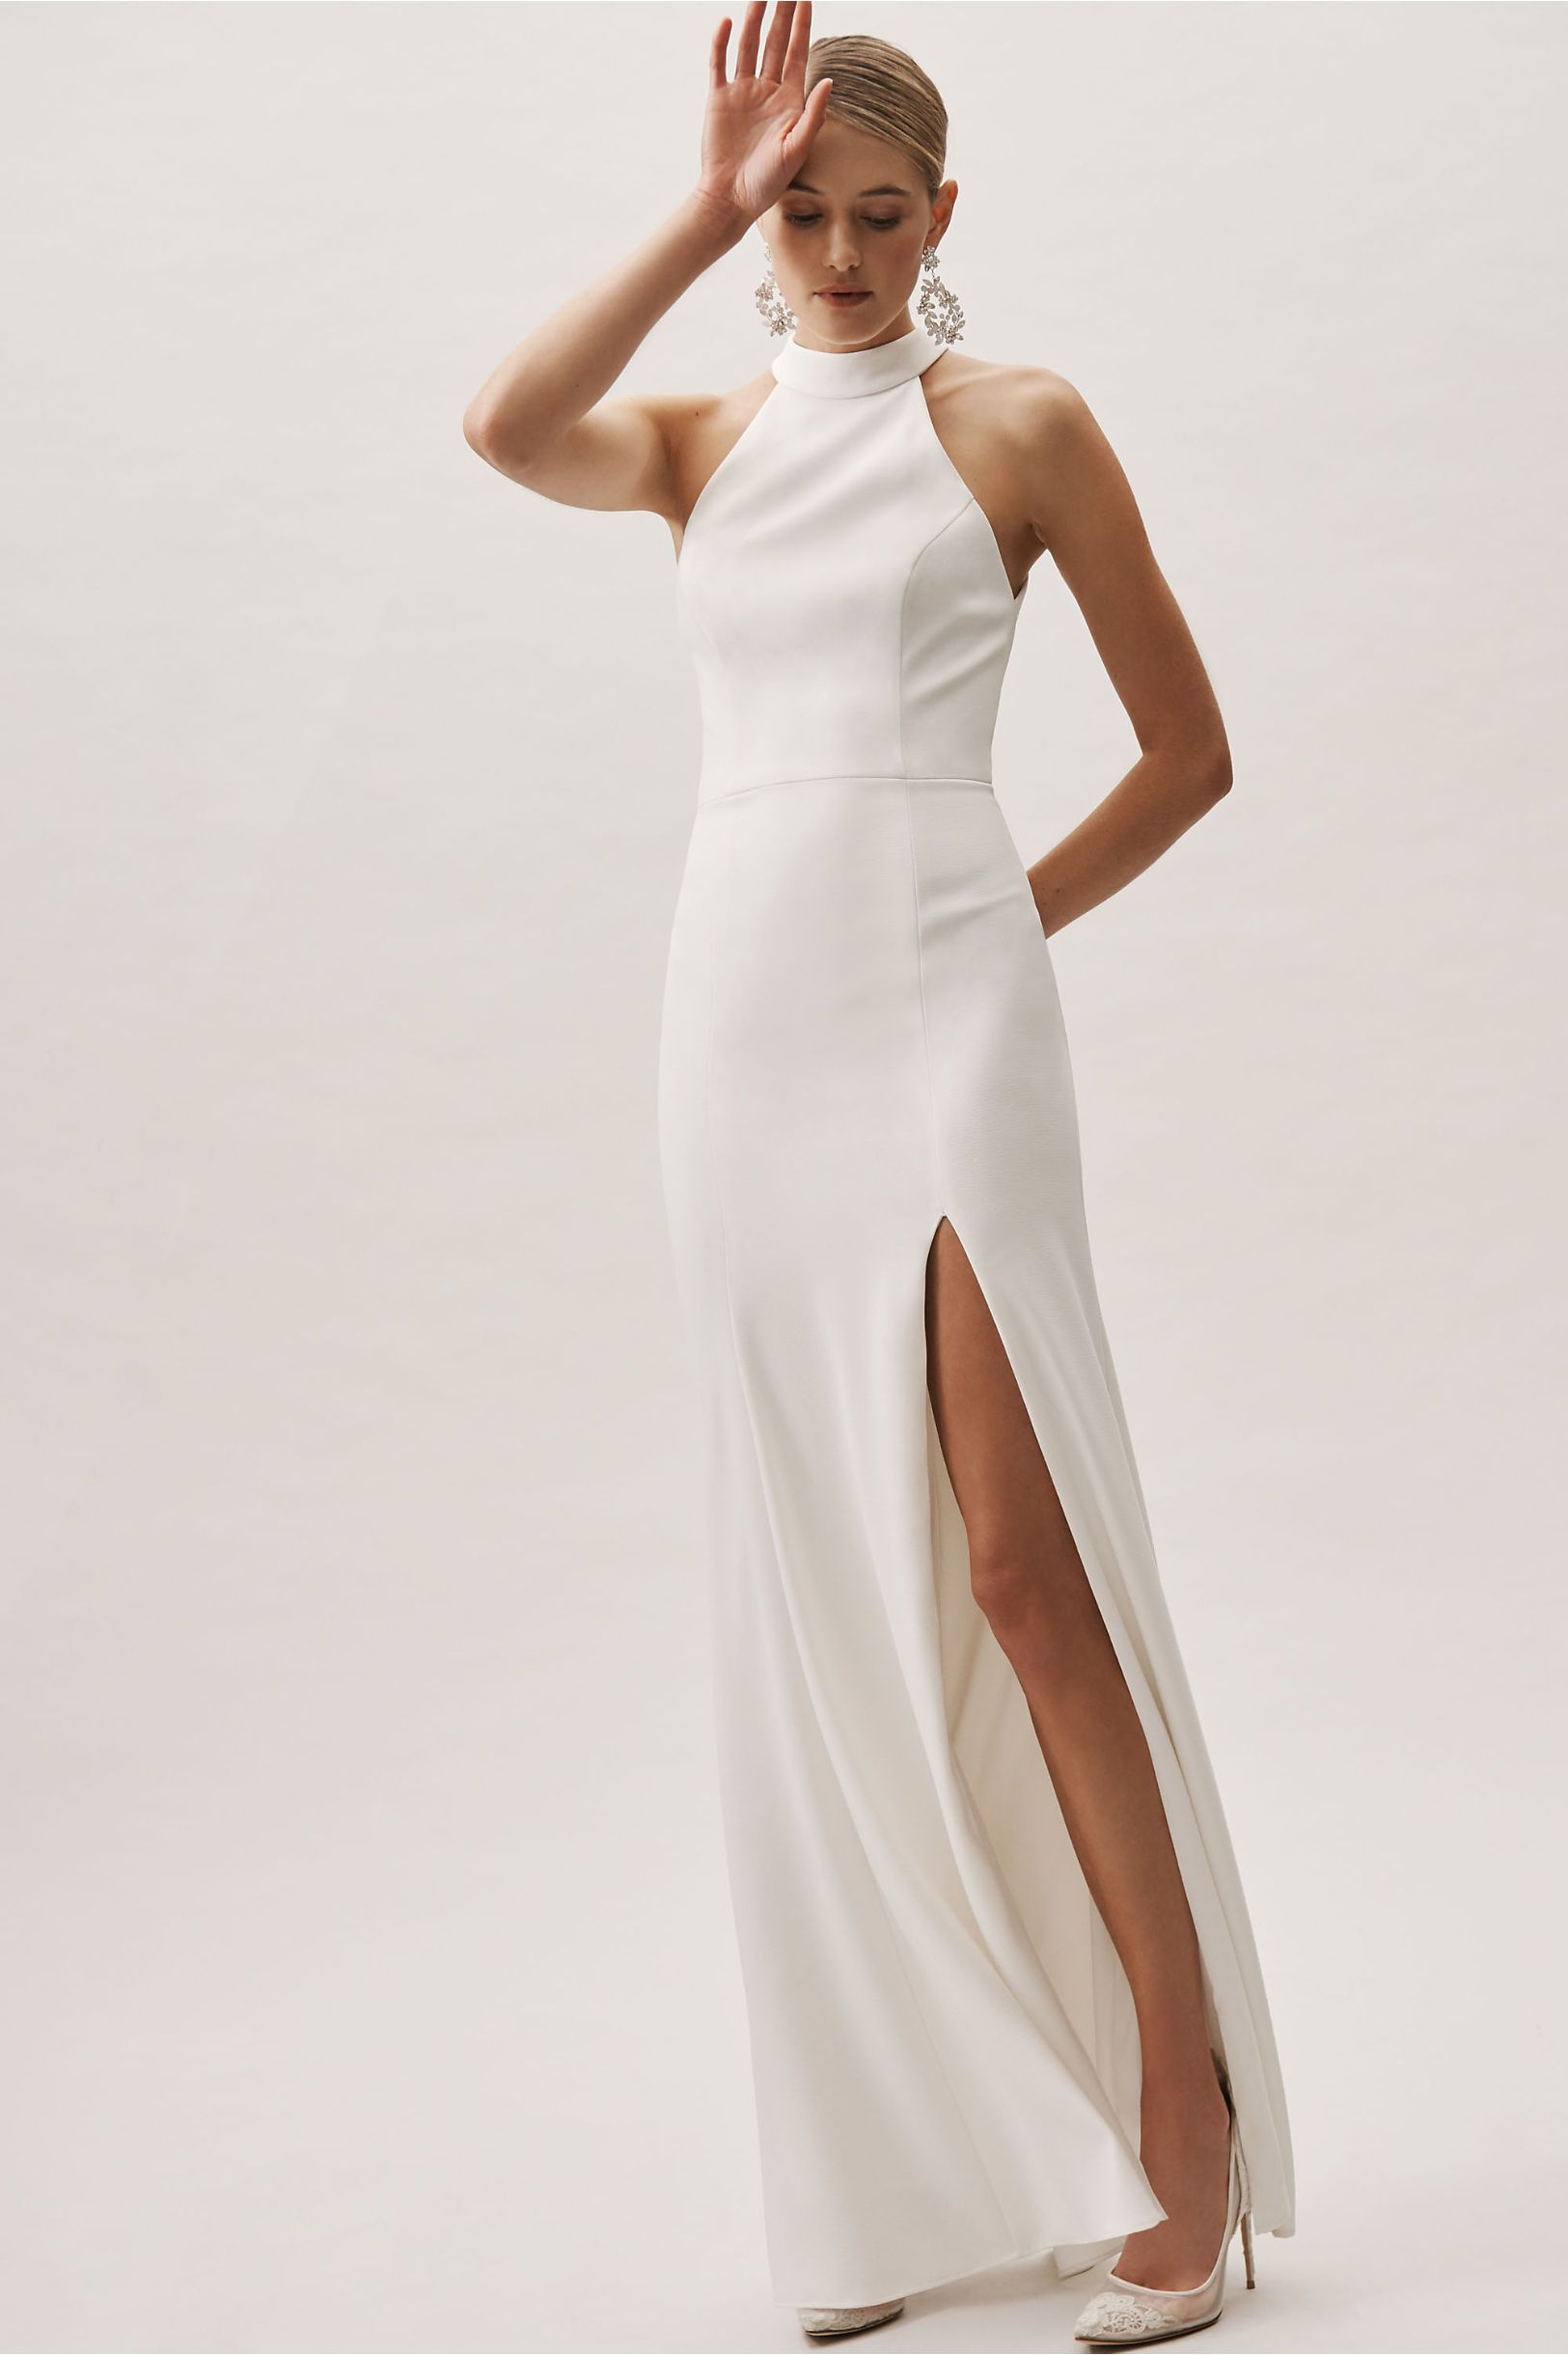 3e8b7ca4573c BHLDN's Montreal Dress in Ivory | Shop the look products in 2019 ...